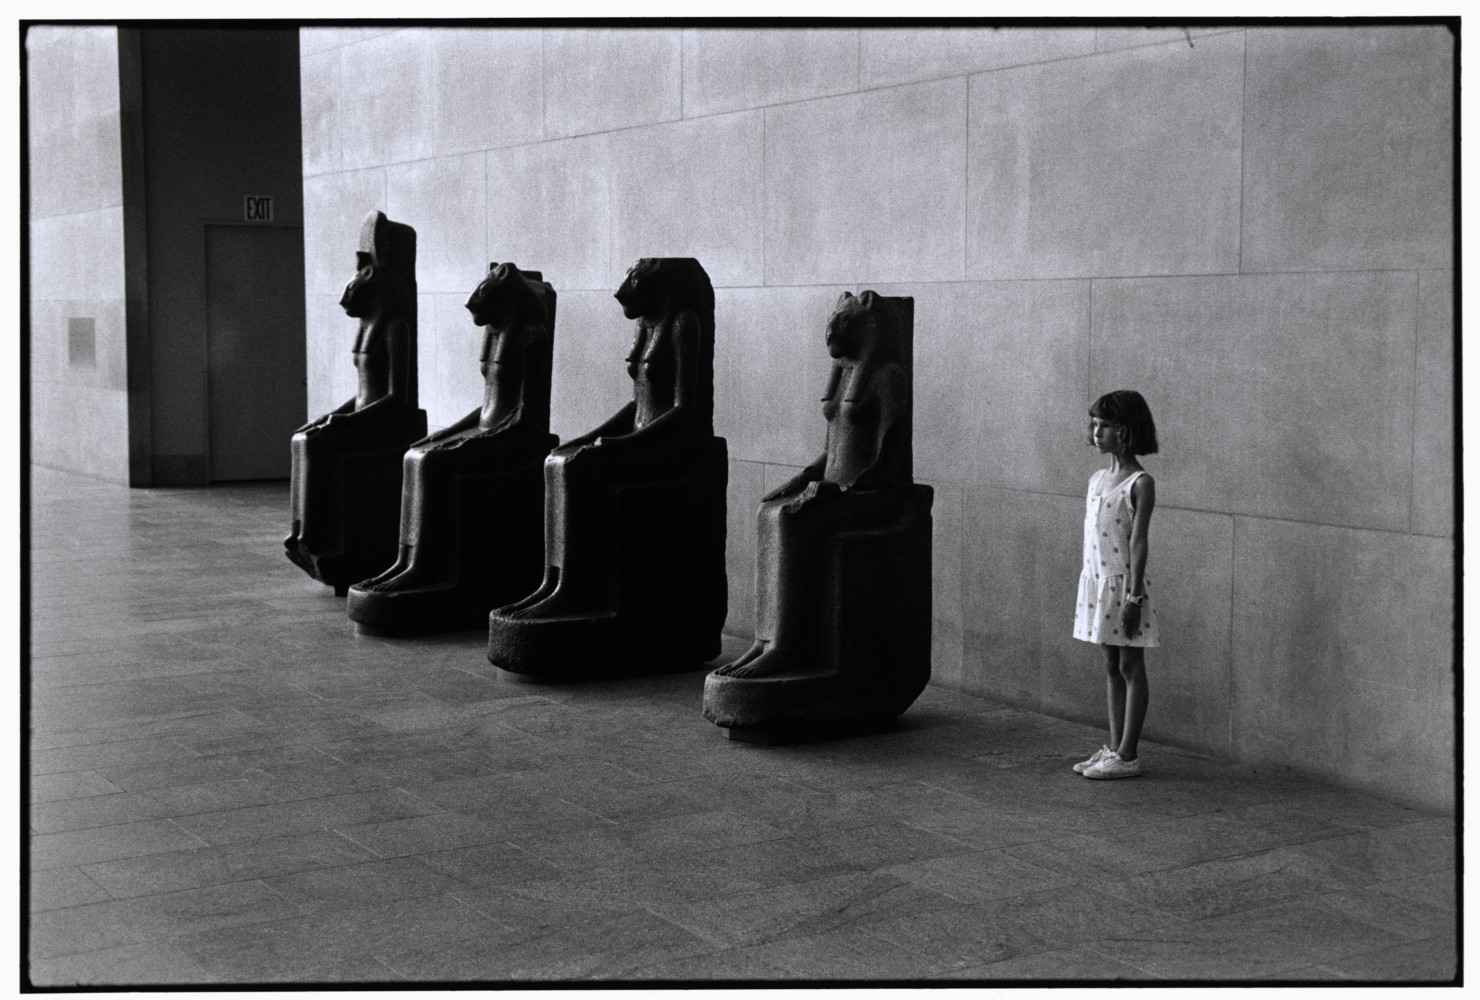 The Art of Looking at Art • Elliott Erwitt • Magnum Photos